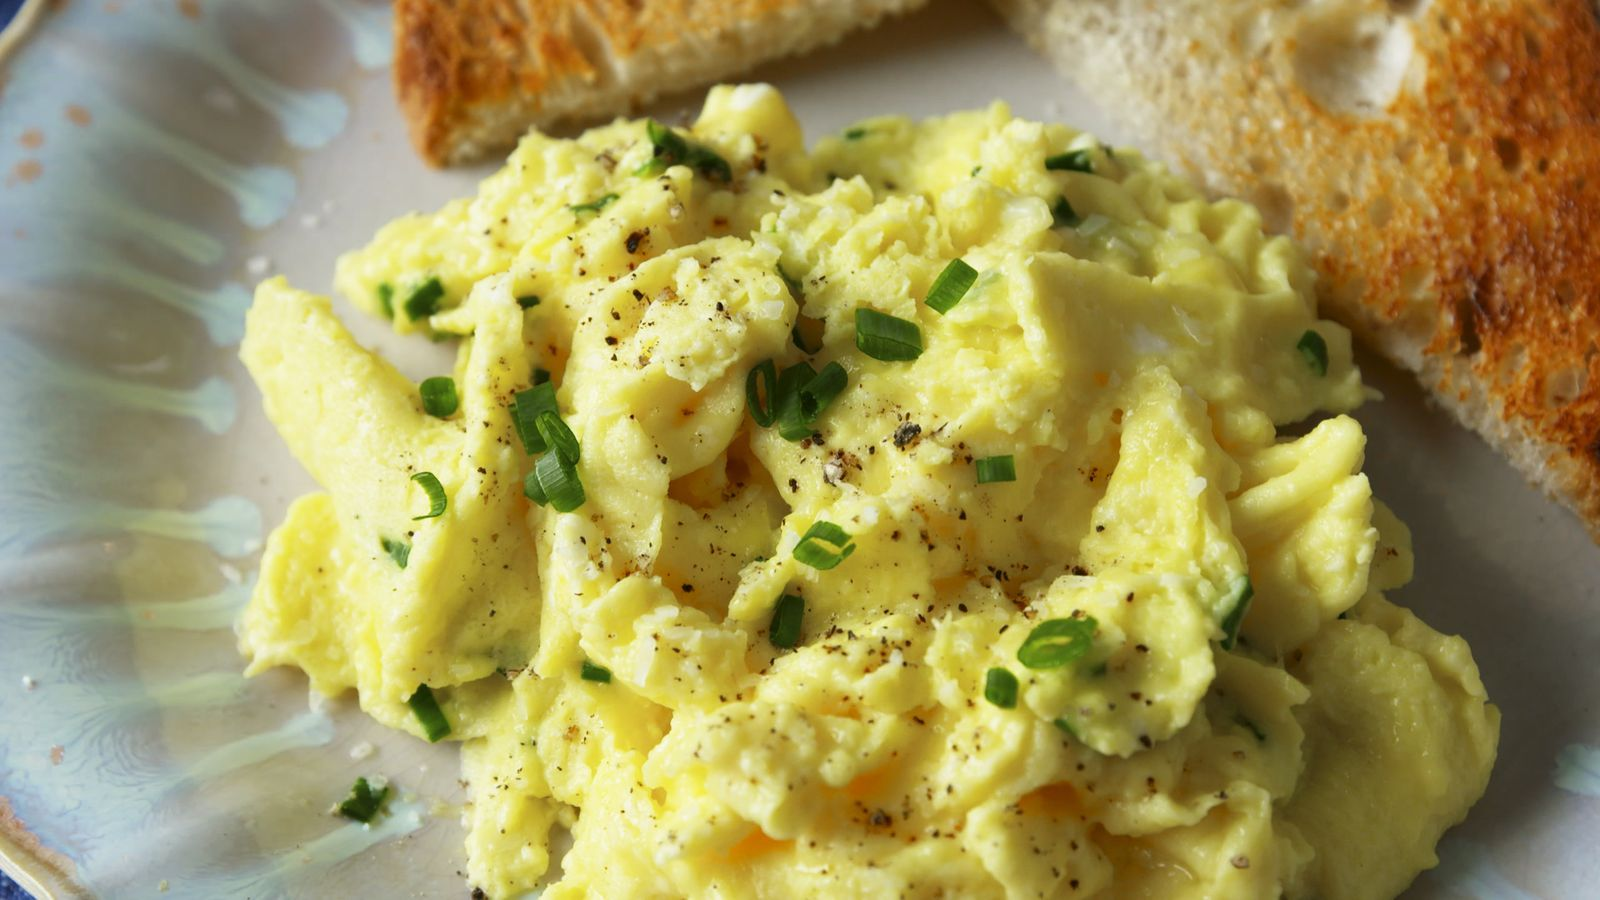 Here S How To Make Super Creamy Scrambled Eggs With Ingredients You Have In Your Fridge Recipe In 2020 Scrambled Eggs Recipe Recipes Best Scrambled Eggs